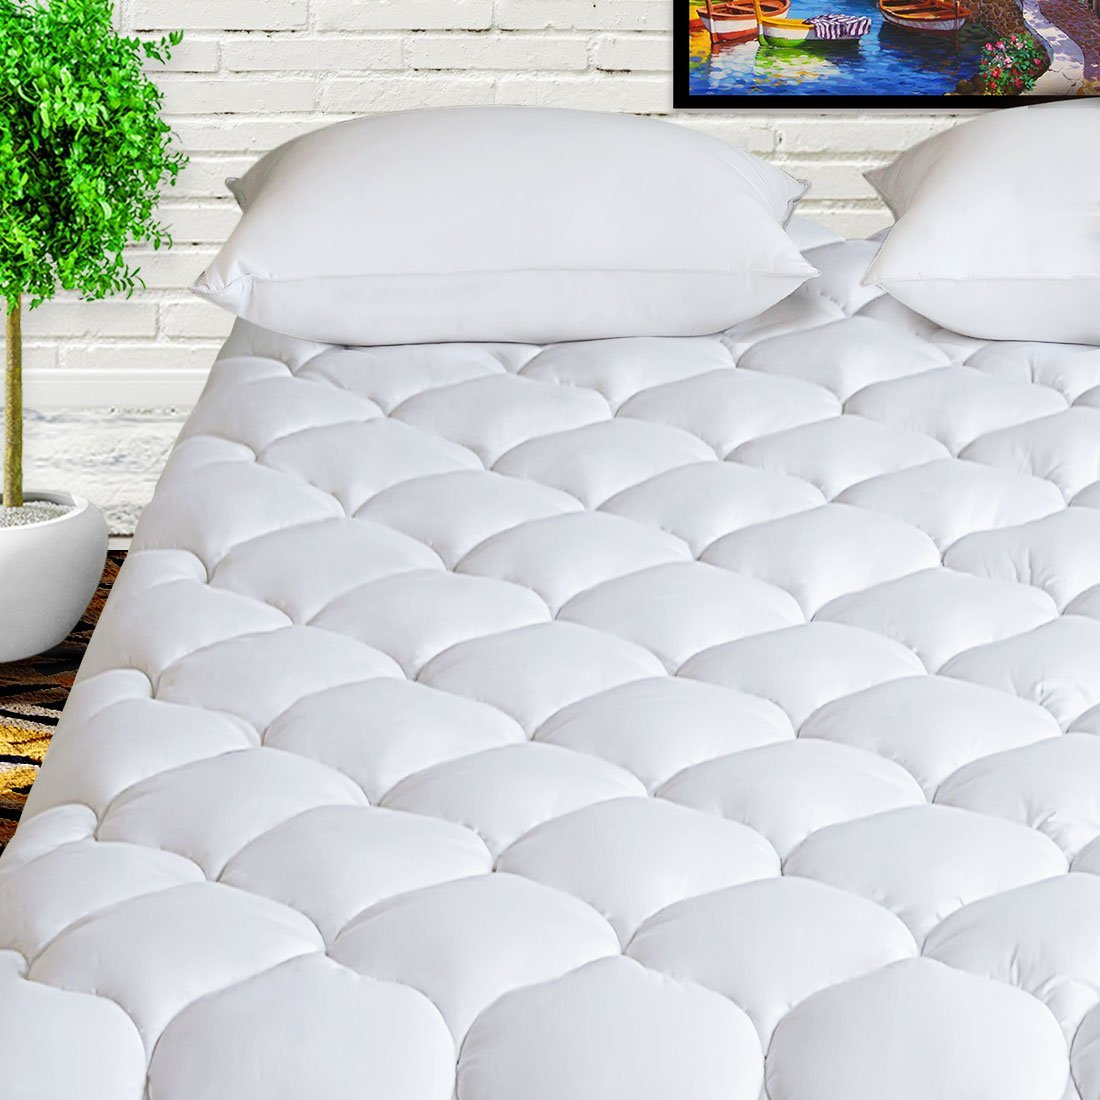 Cheap Cooling Mattress Pad Find Cooling Mattress Pad Deals On Line